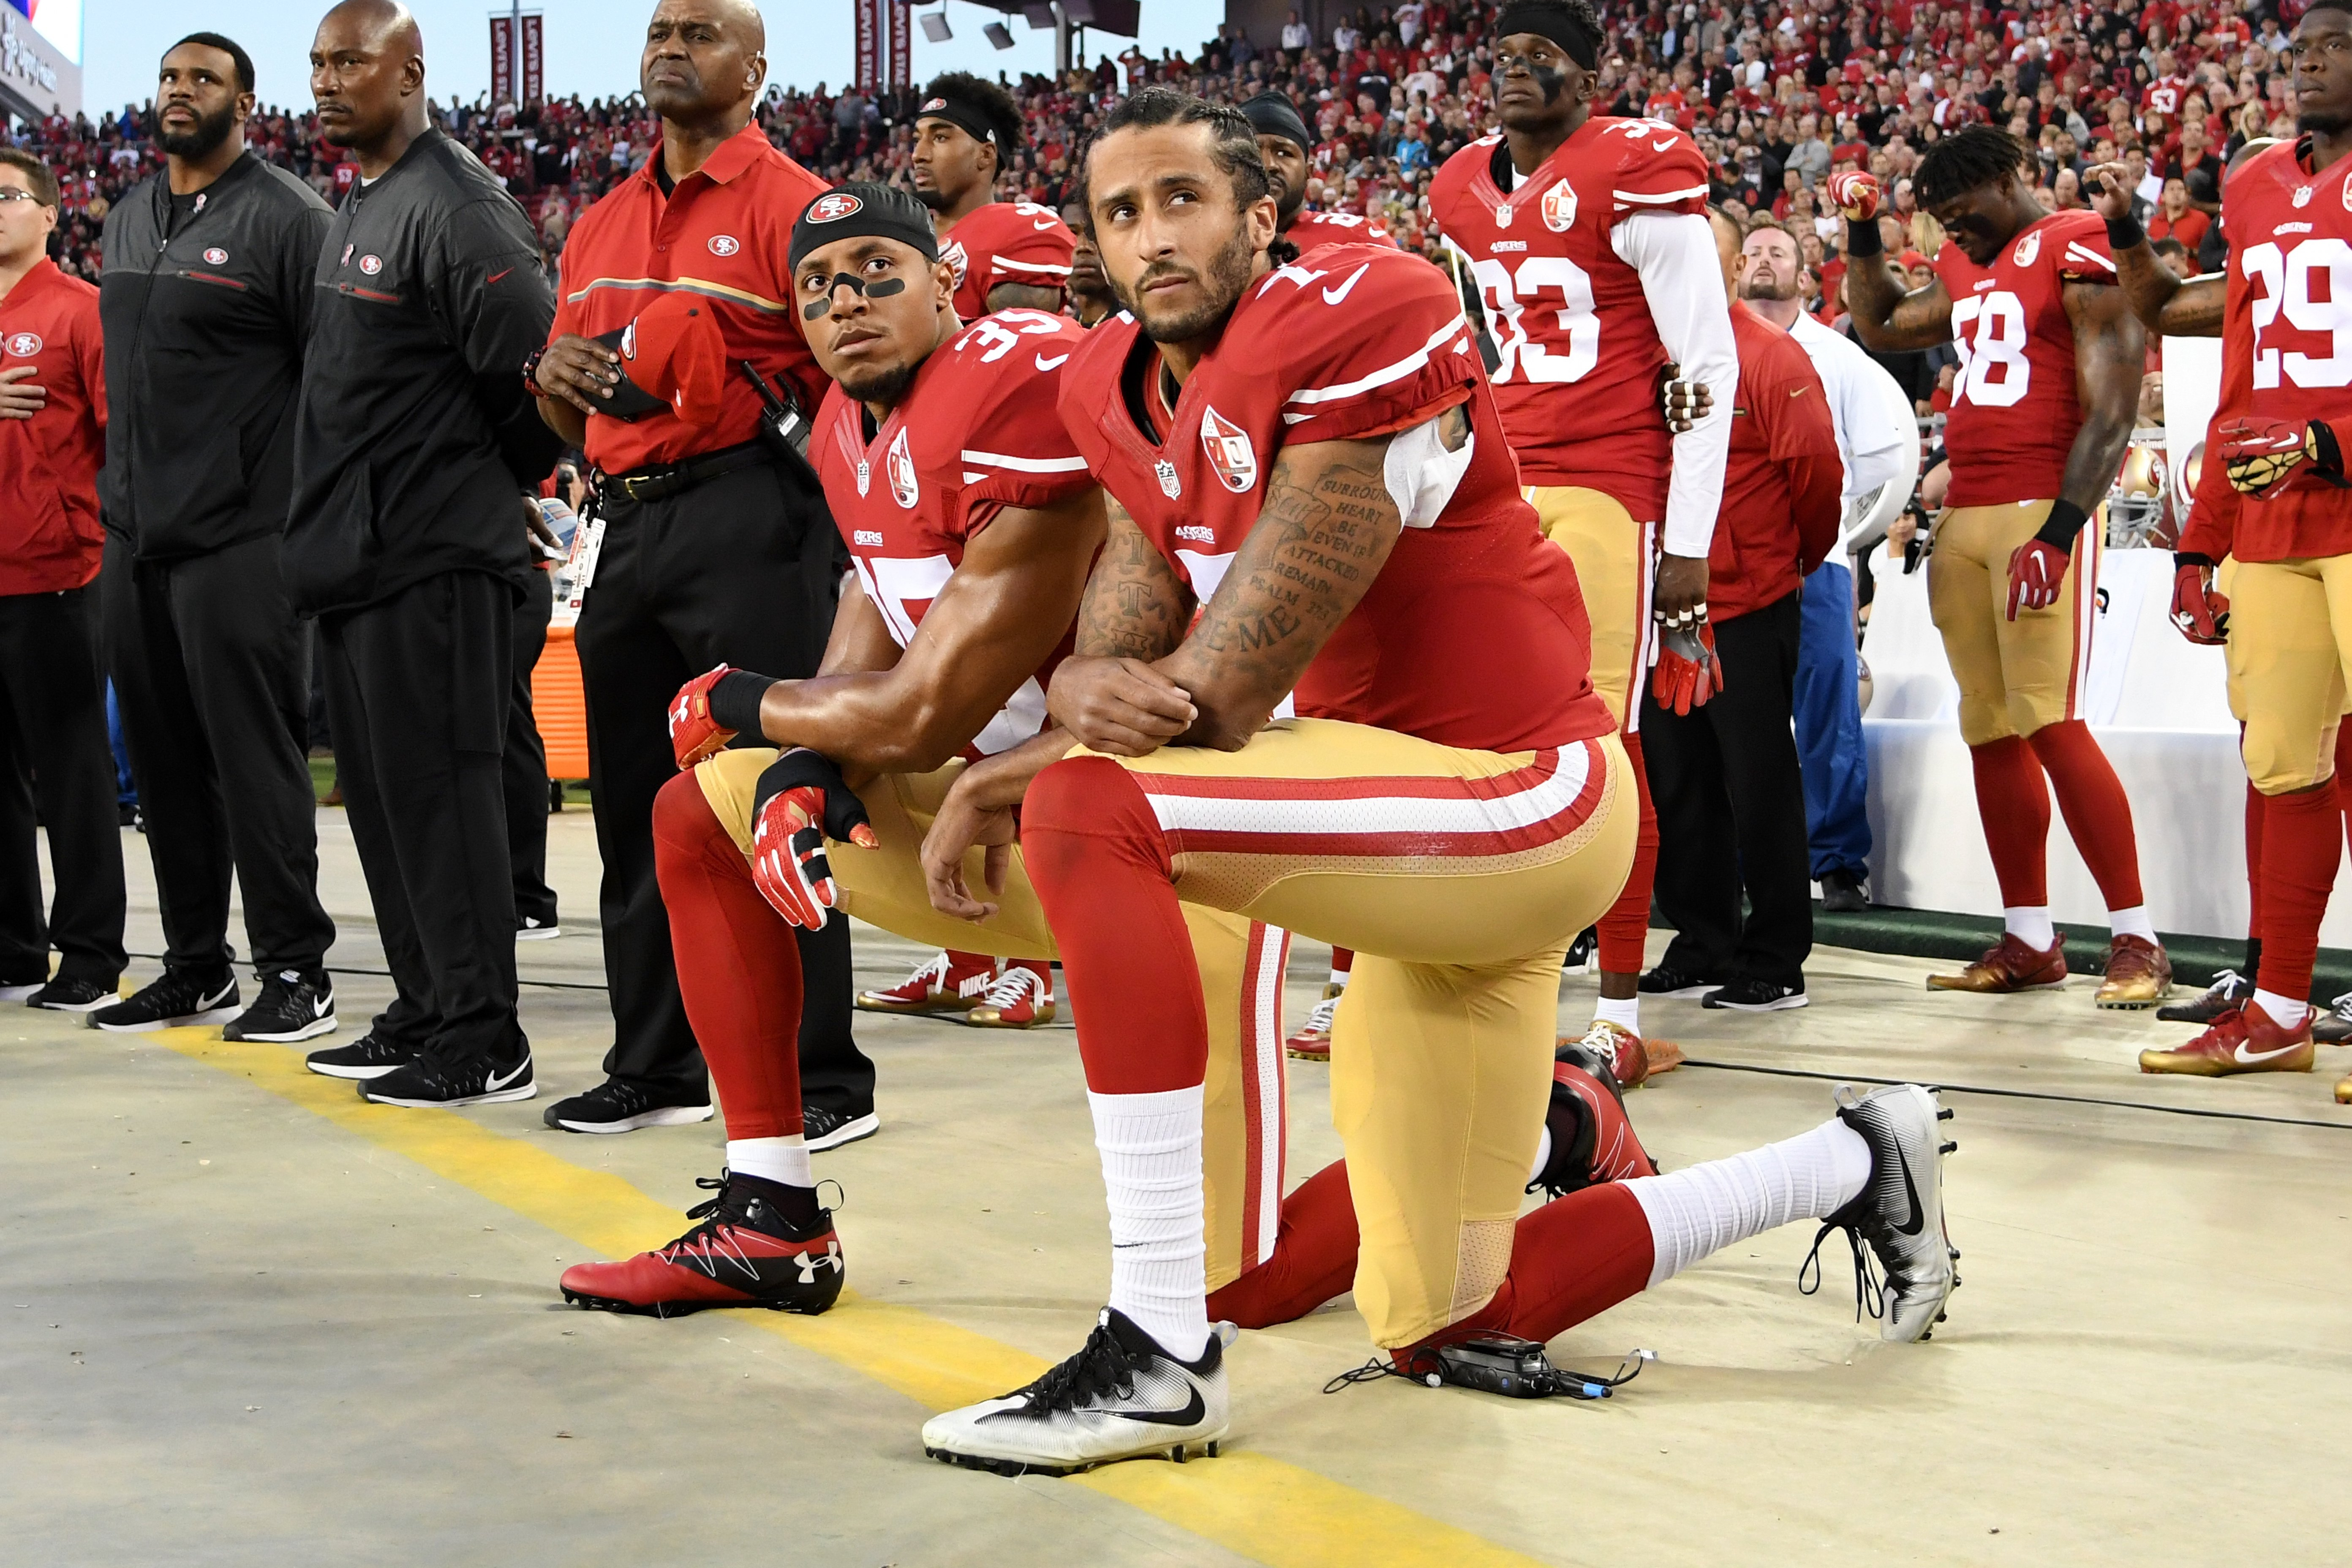 Colin Kaepernick and teammate Eric Reid kneel in protest during September 12, 2016 game against the Los Angeles Rams